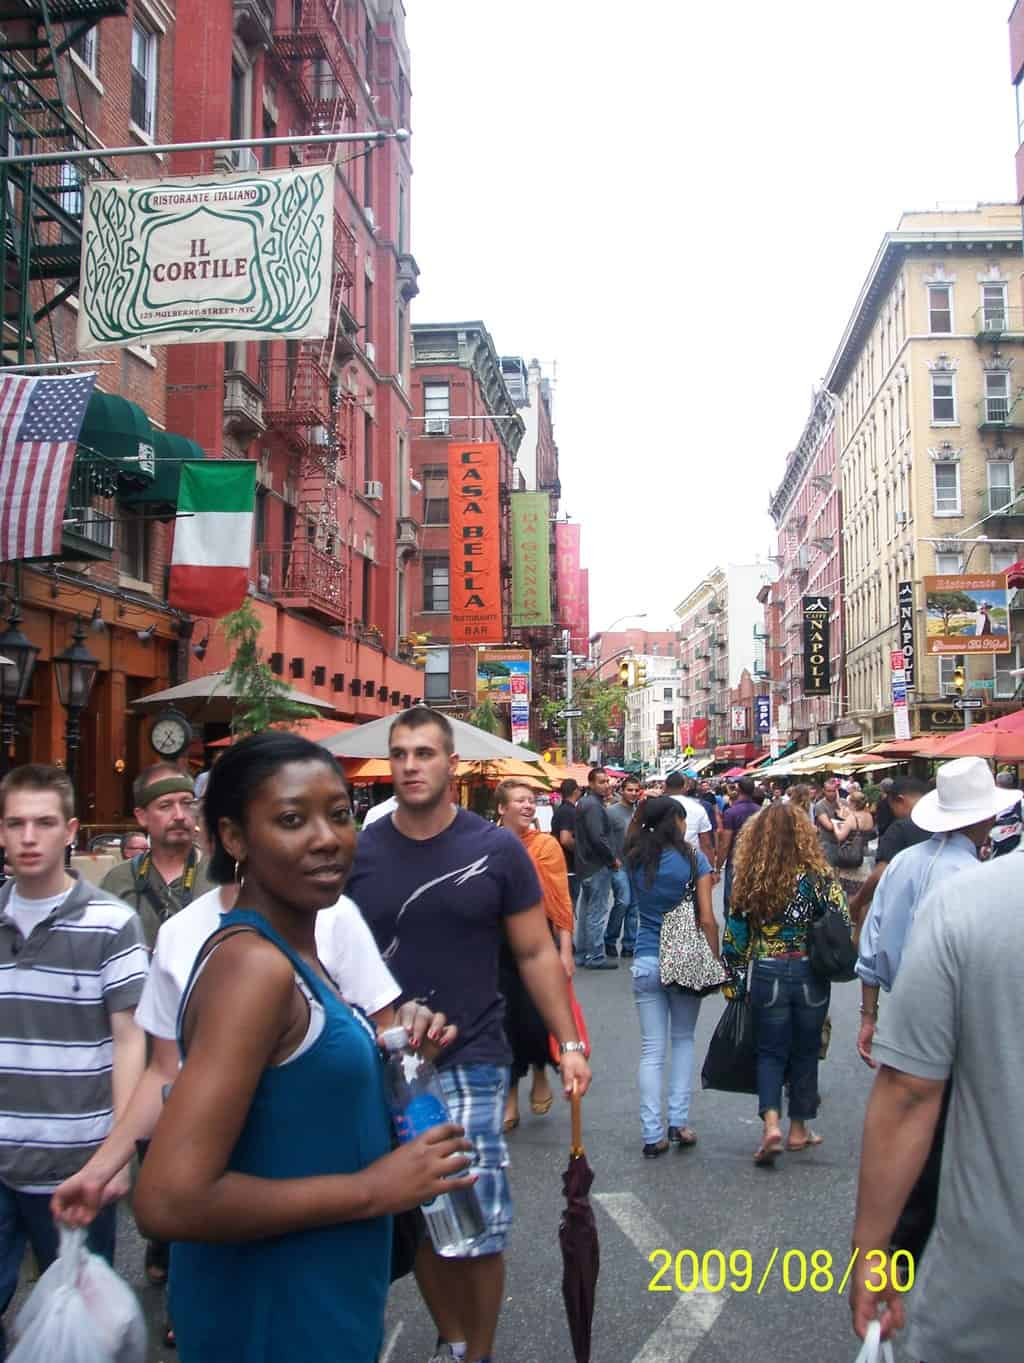 When I first visited NYC in 2009, I stayed at a hostel. I quickly became friends with a girl from Chicago and we toured around the city together.